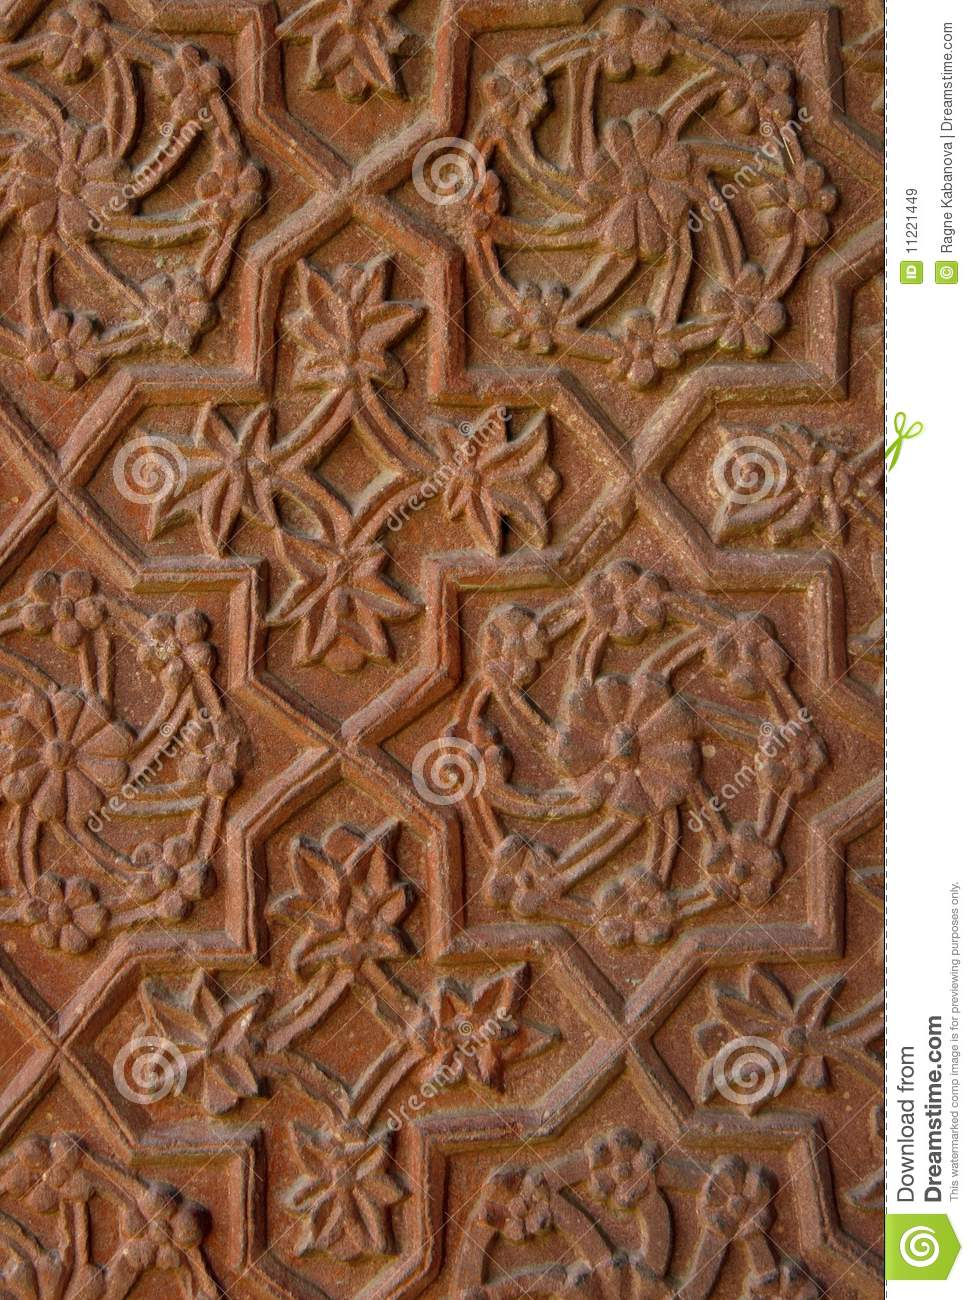 Stone carvings on the temple wall india stock image